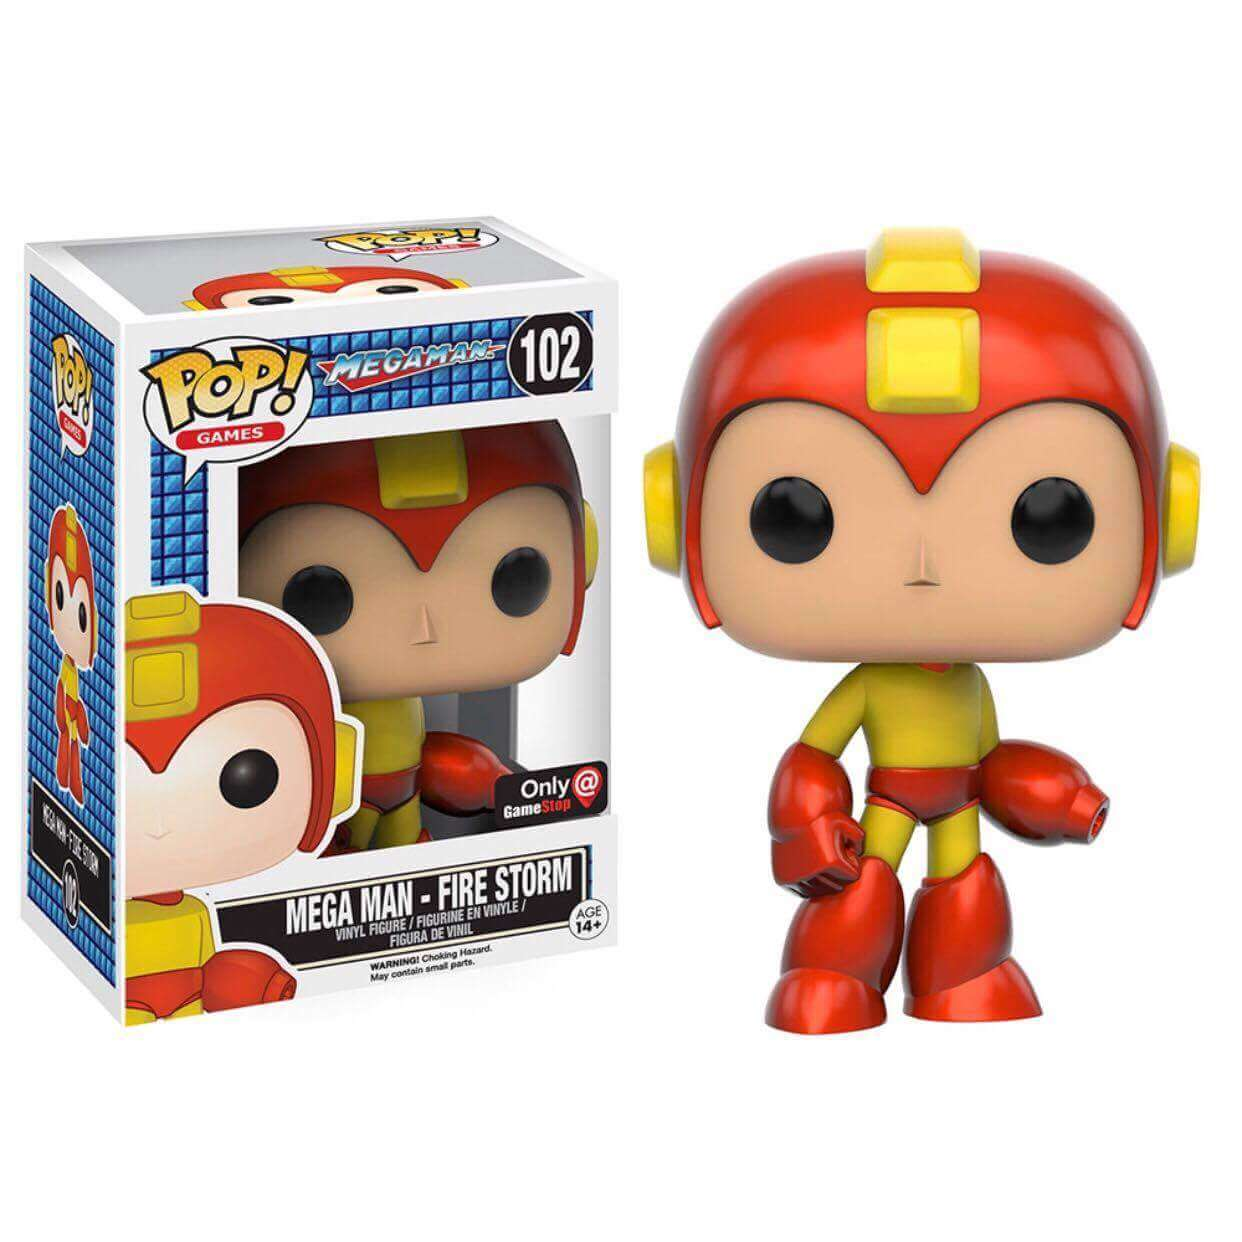 Funko Mega Man - Fire Storm Pop! Vinyl